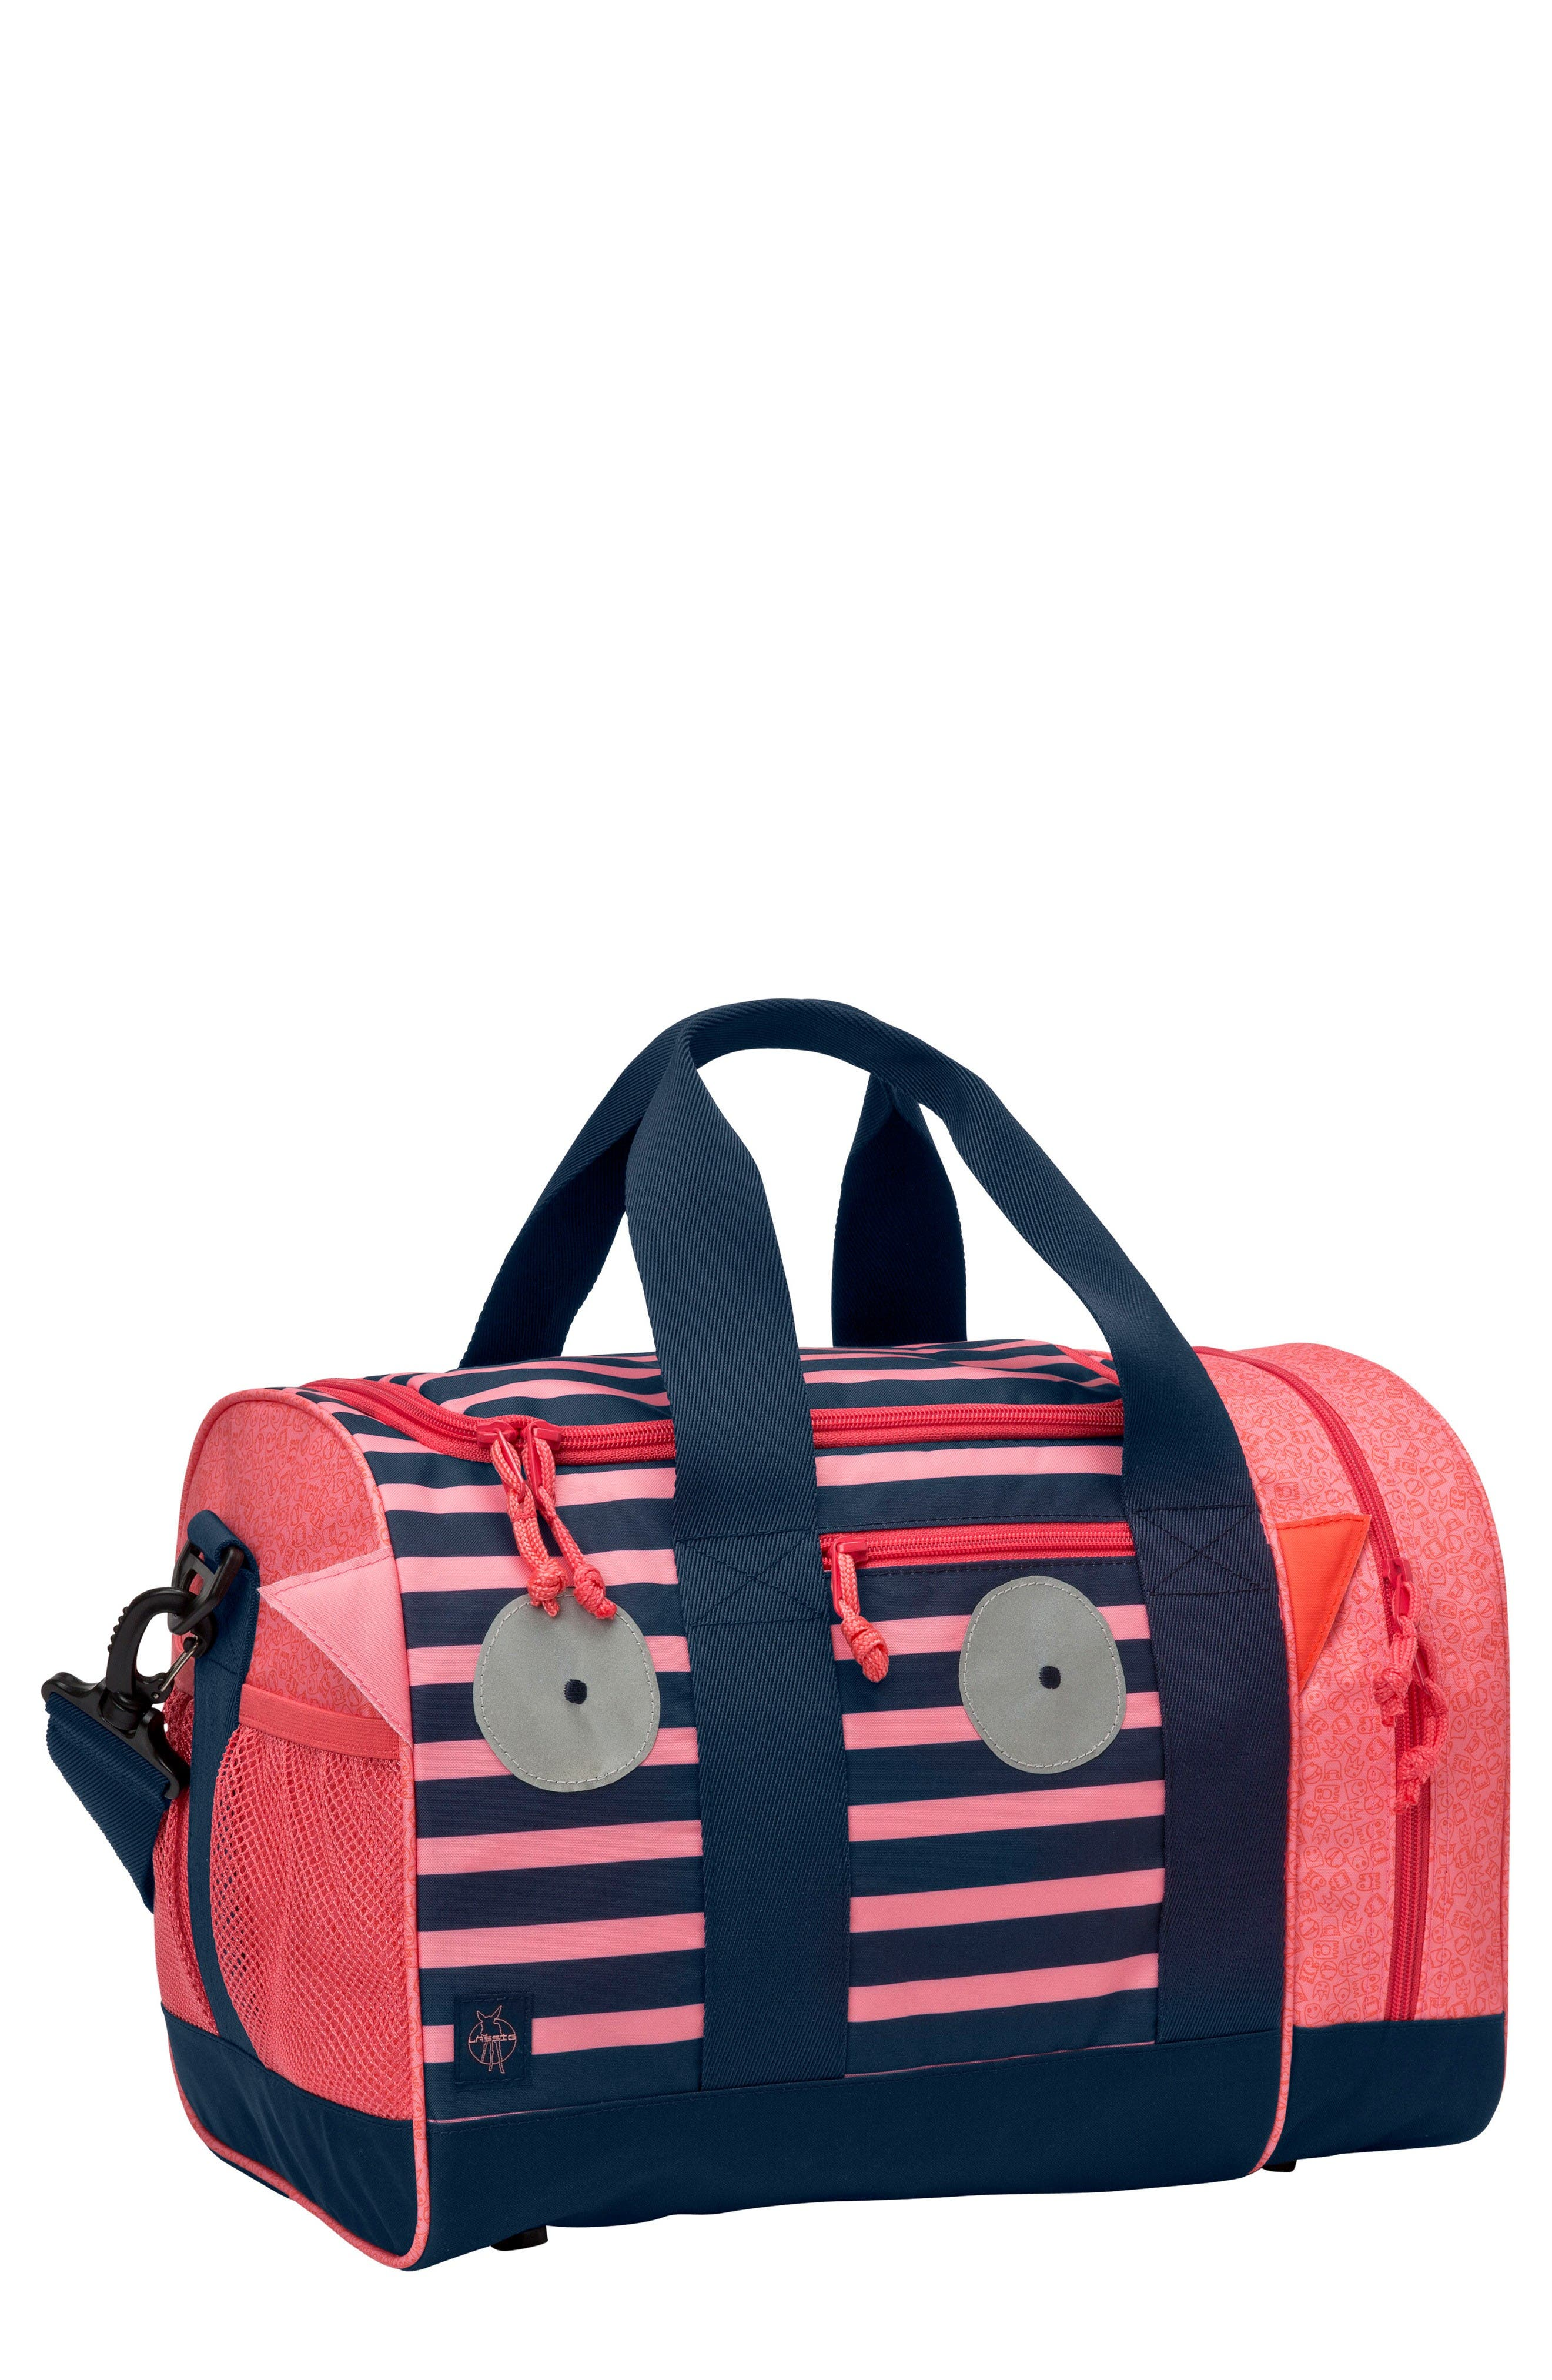 Mini Sports Bag with Glow-in-the-Dark Eyes,                             Main thumbnail 1, color,                             Mad Mabel